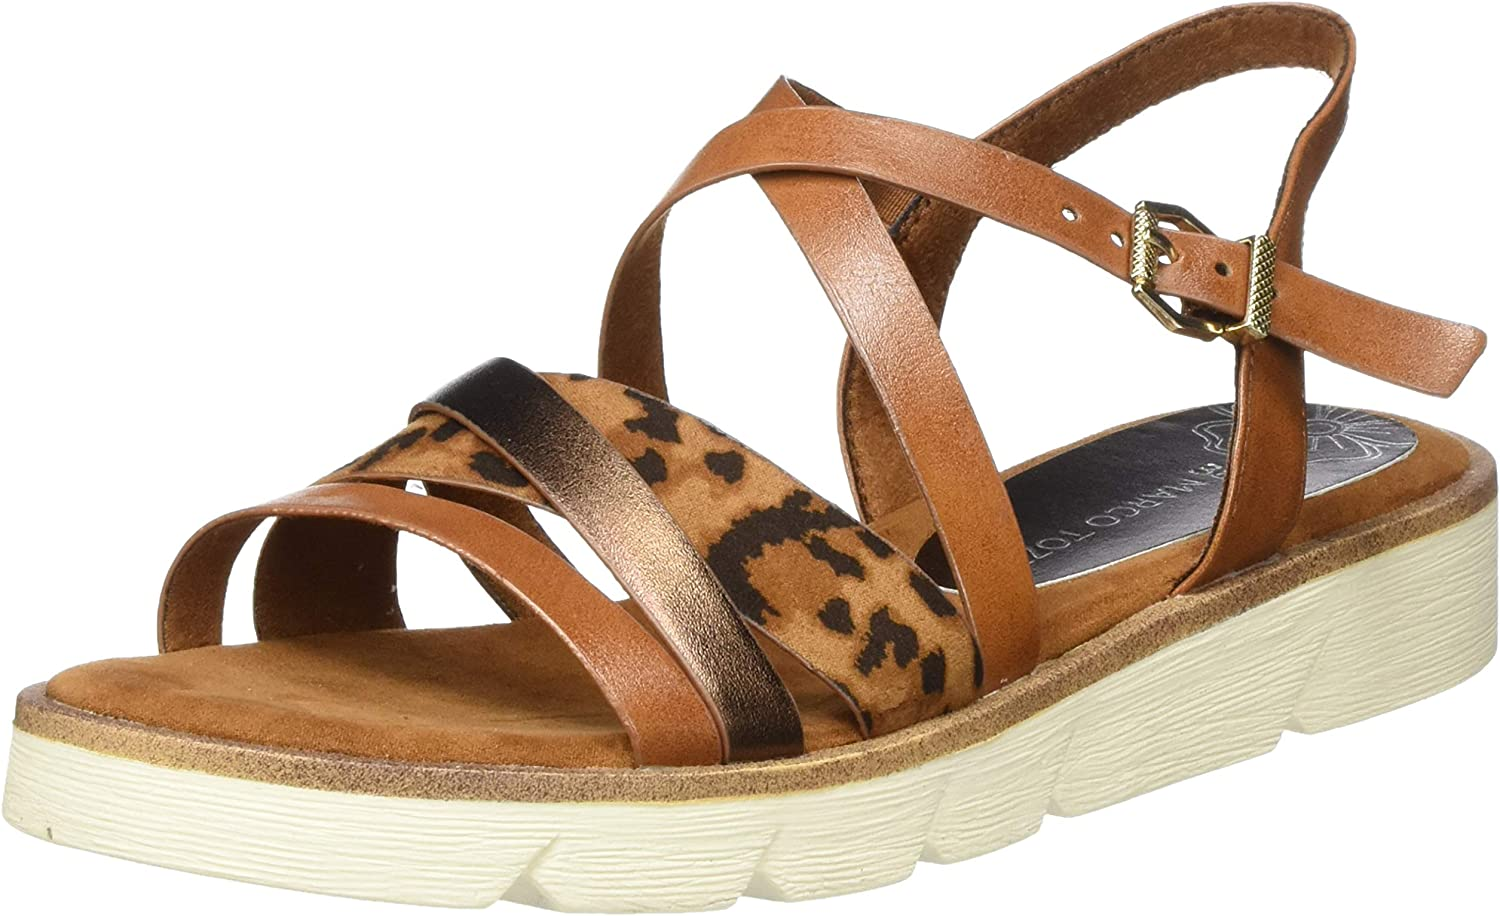 Marco Super intense SALE Tozzi Women's Sandals New mail order Strap Ankle